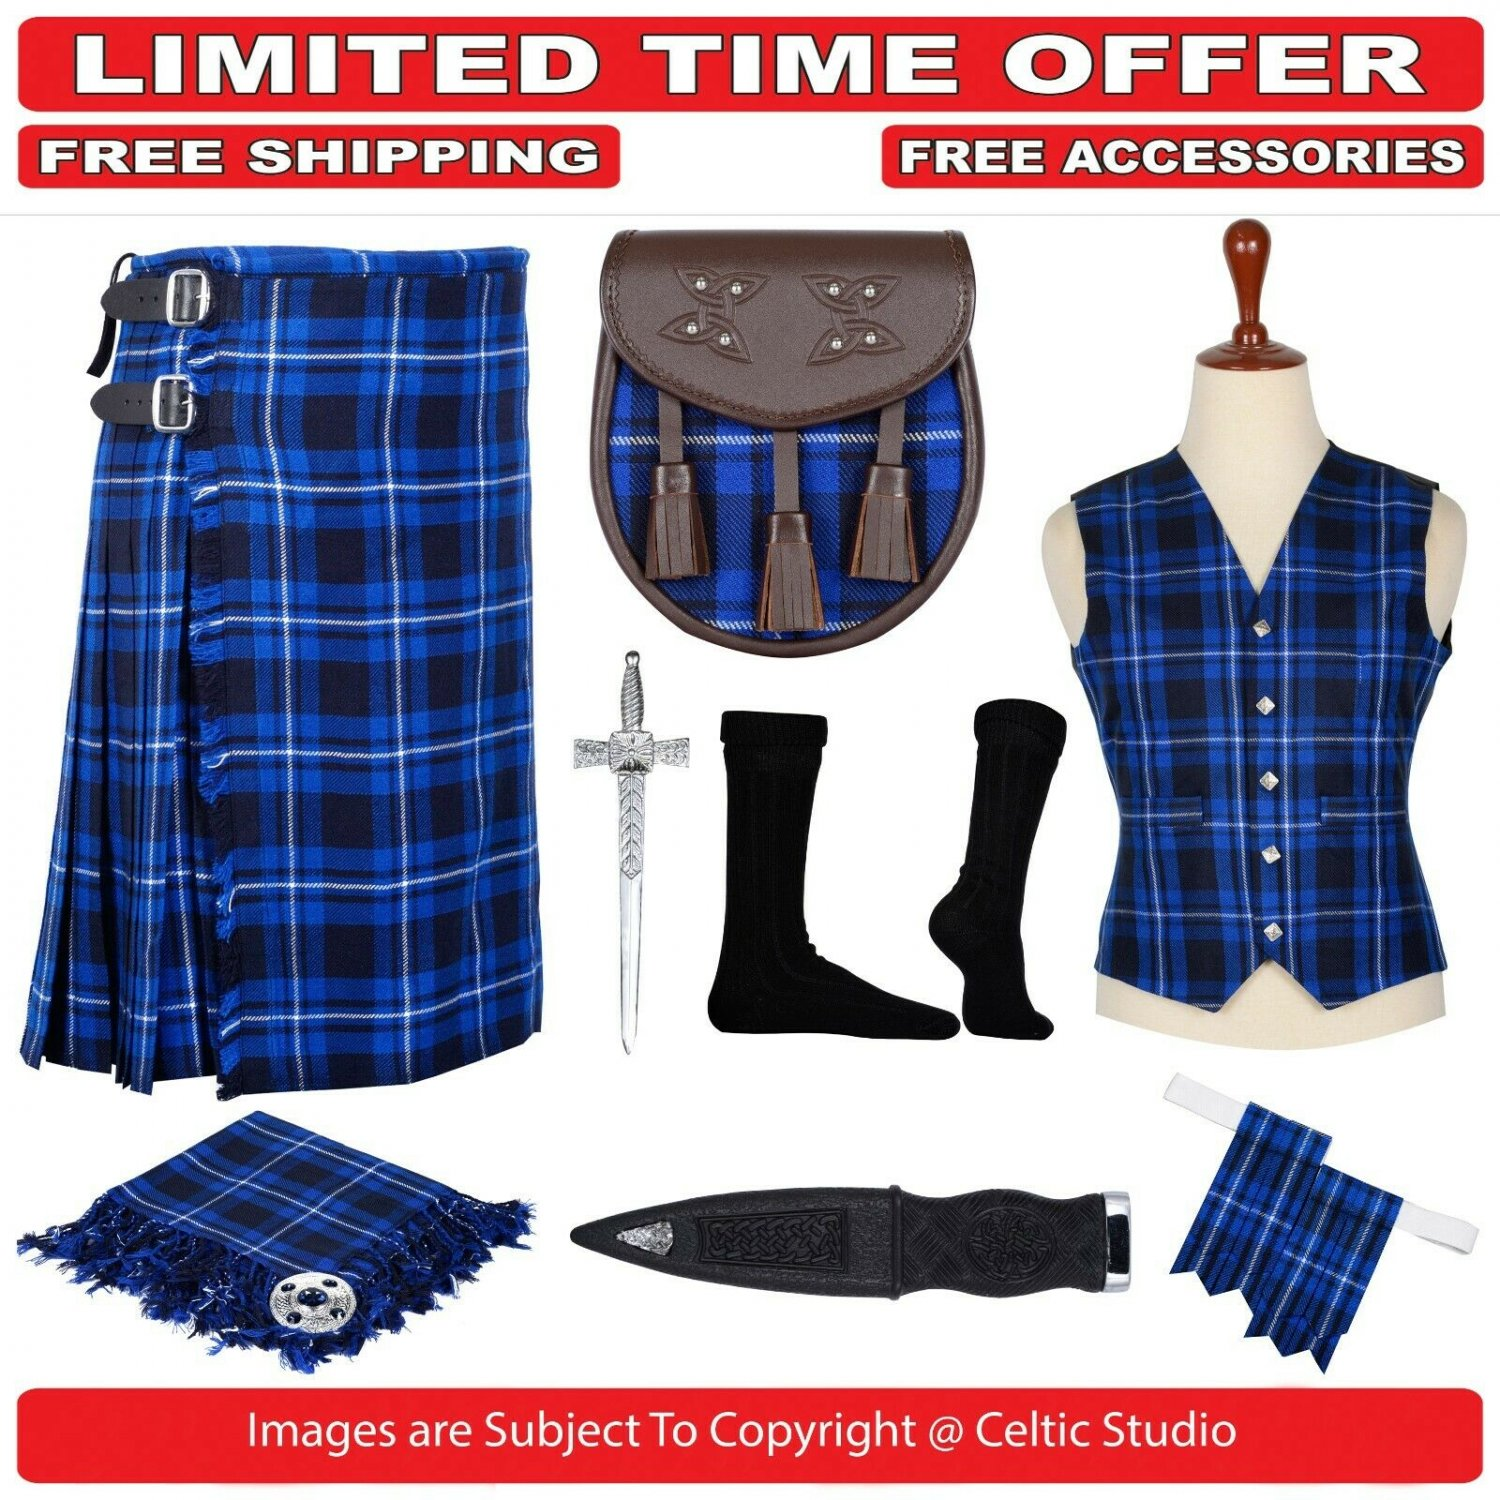 44 size Ramsey Blue Scottish Traditional Tartan Kilt With Free Shipping and 9 Accessories